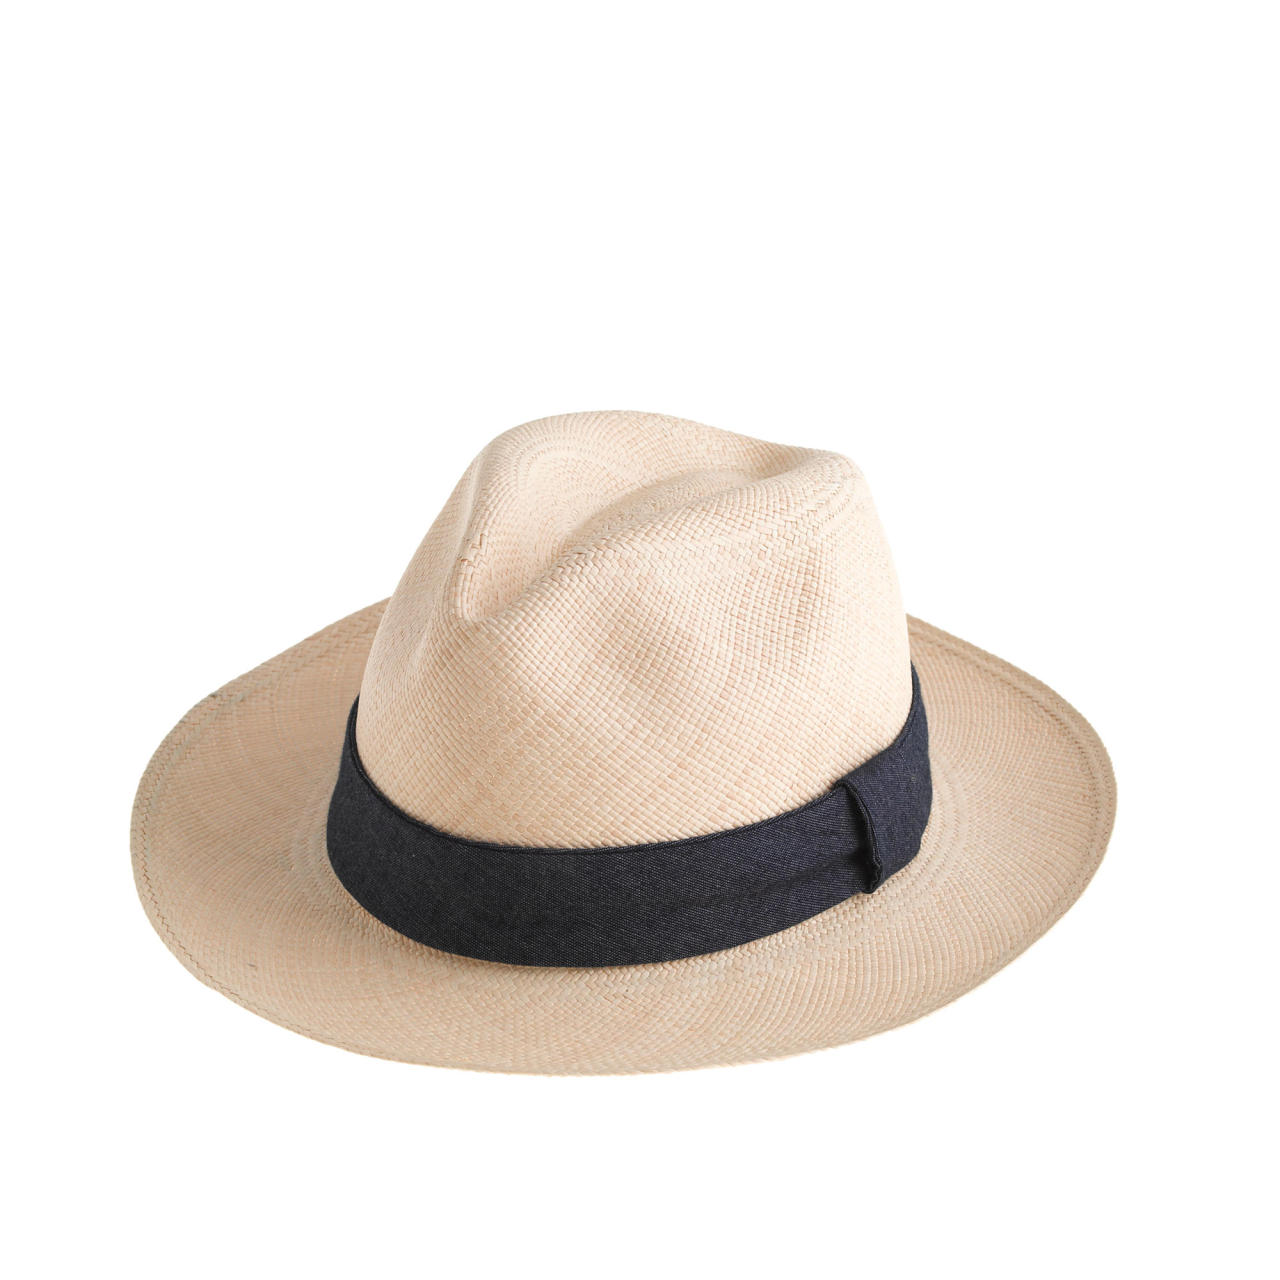 d1b87bbde The First Straw: Entry-Level Panama Hats for Summer – Put This On